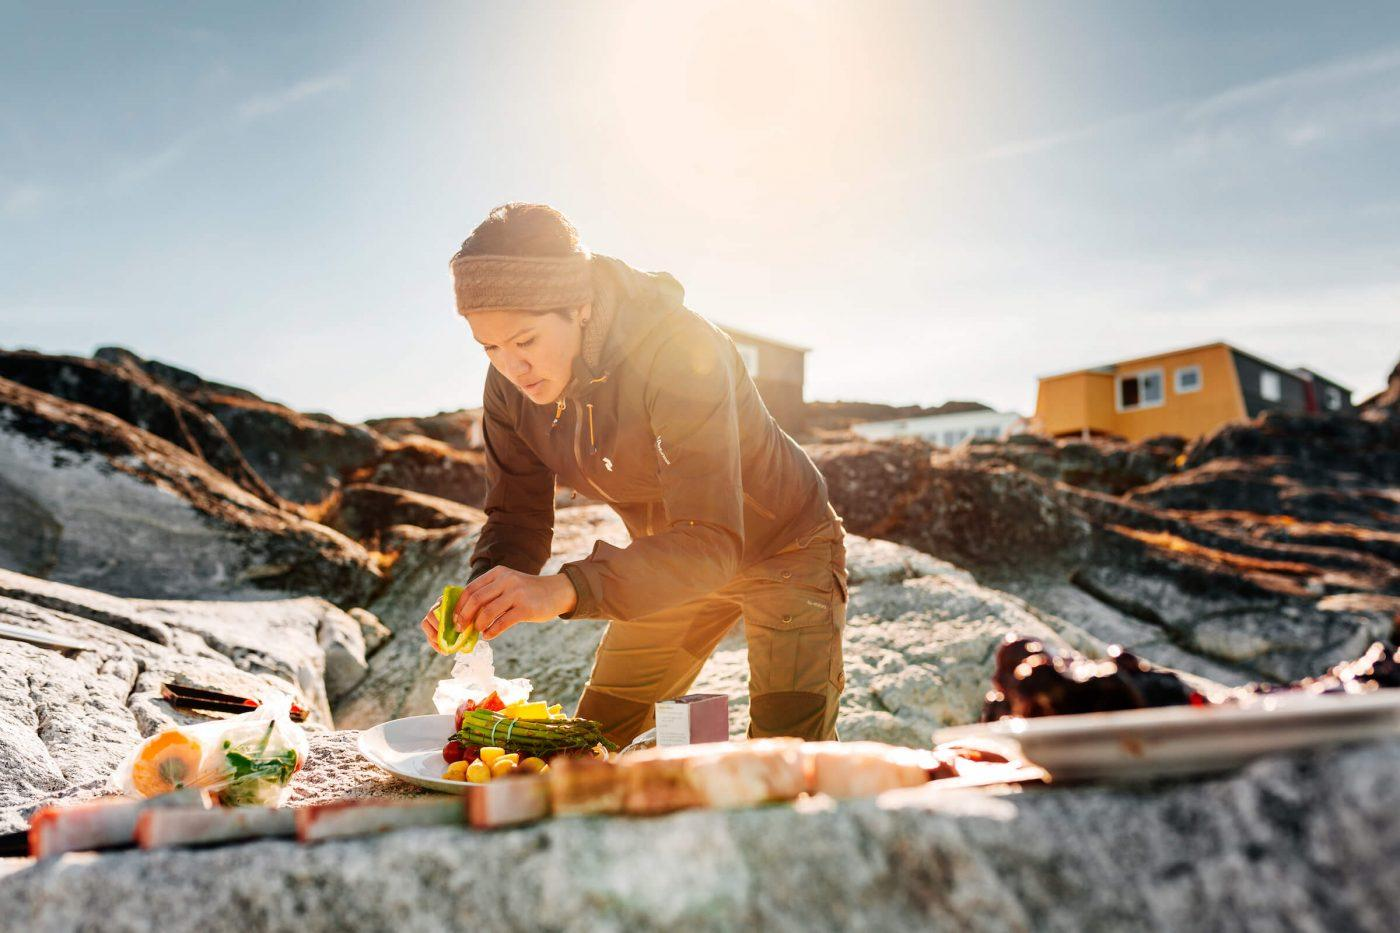 Woman preparing Greenlandic specialties on the rocks on the beach by Inuk Hostels in Nuuk in Greenland. Photo by Rebecca Gustafsson - Visit Greenland